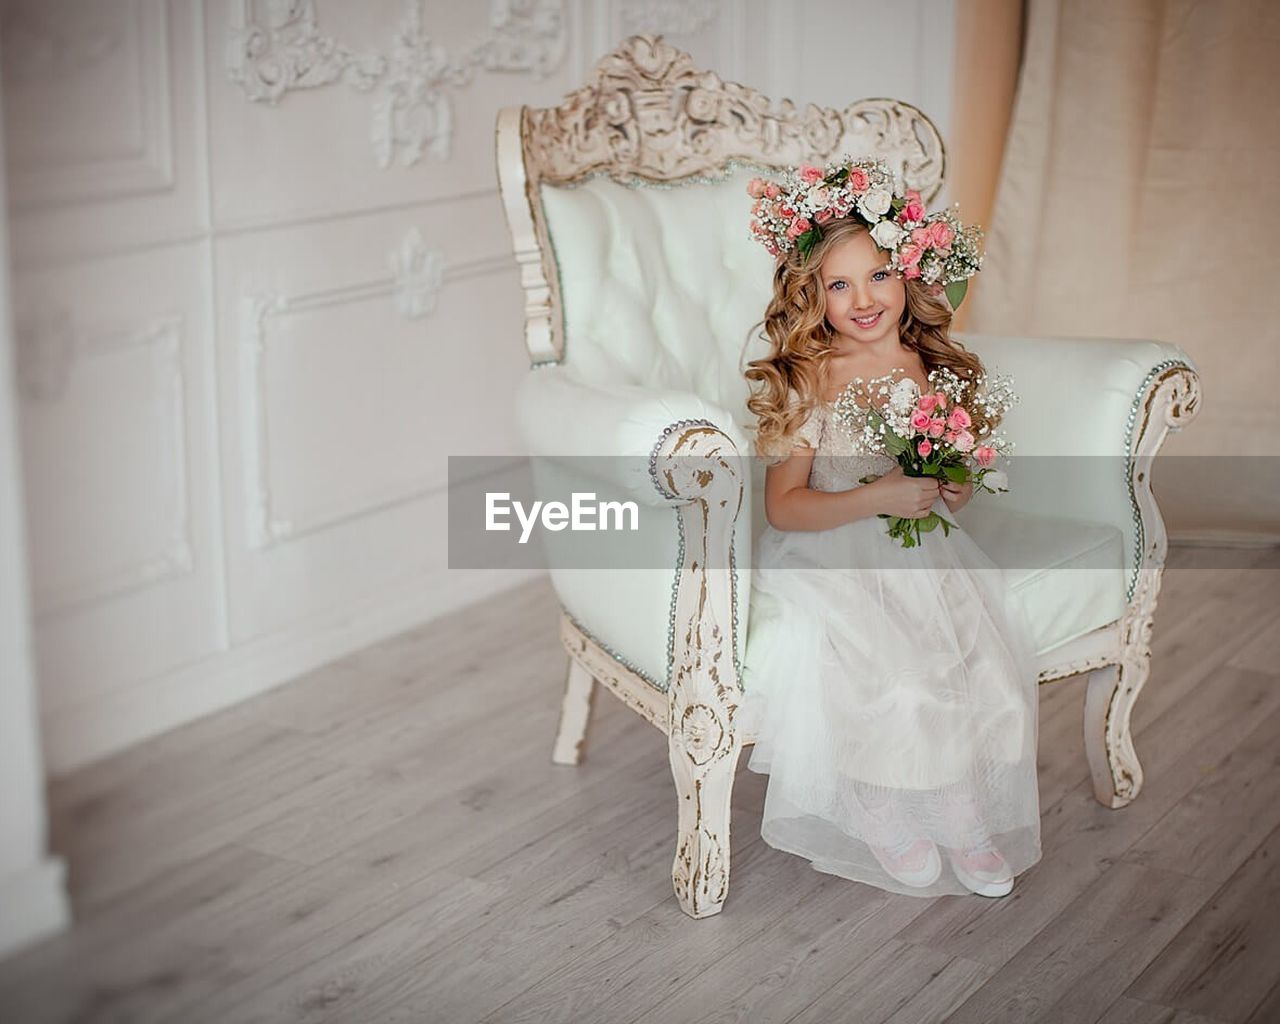 cute, indoors, one person, tiara, girls, childhood, crown, celebration, elementary age, smiling, home interior, full length, bride, portrait, wedding, happiness, sitting, beauty, children only, child, one girl only, life events, wedding dress, beautiful people, evening gown, blond hair, flower, day, people